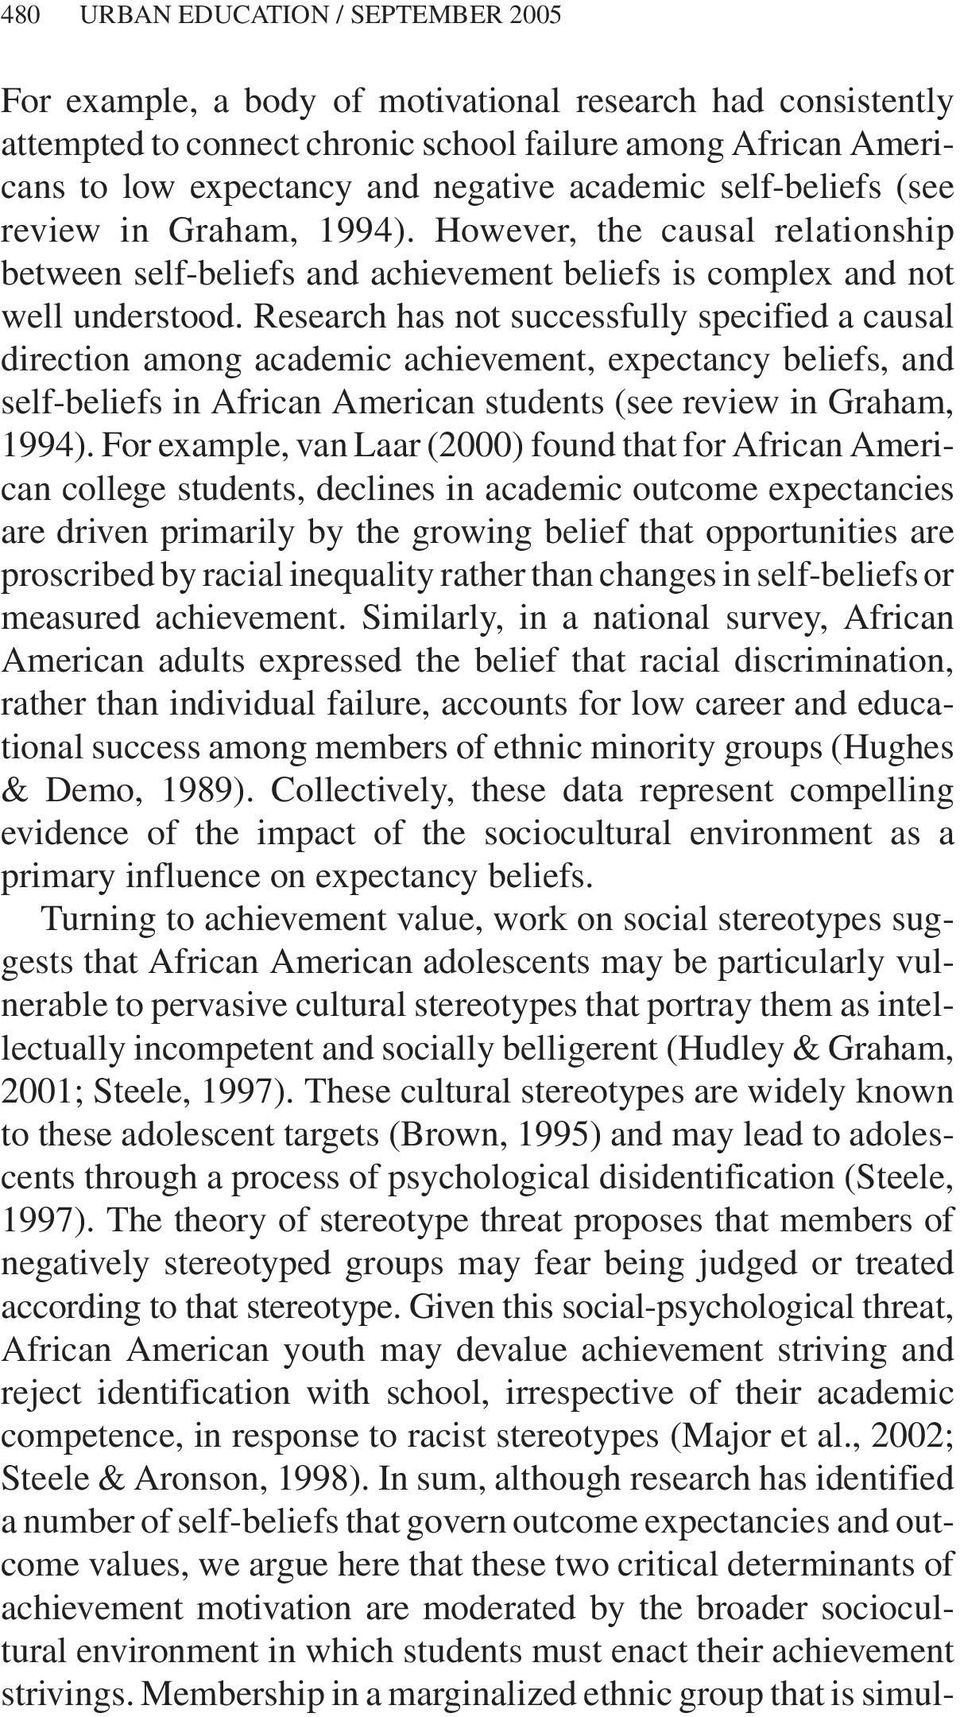 Research has not successfully specified a causal direction among academic achievement, expectancy beliefs, and self-beliefs in African American students (see review in Graham, 1994).